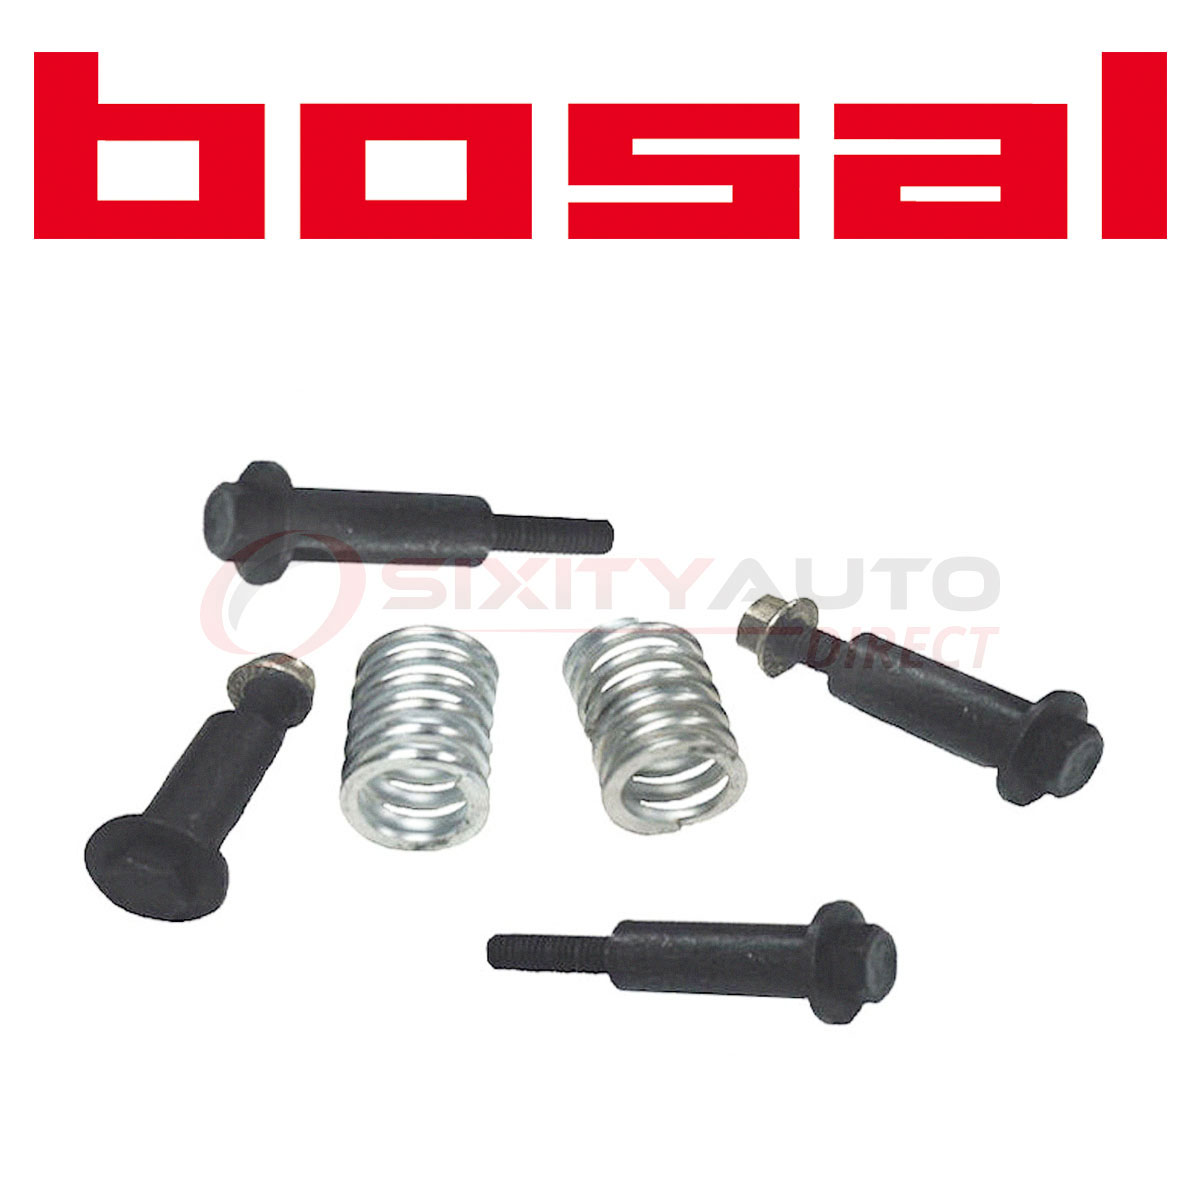 Bosal Exhaust Pipe Bolt Nut Spring Kit For 1988-2001 Acura